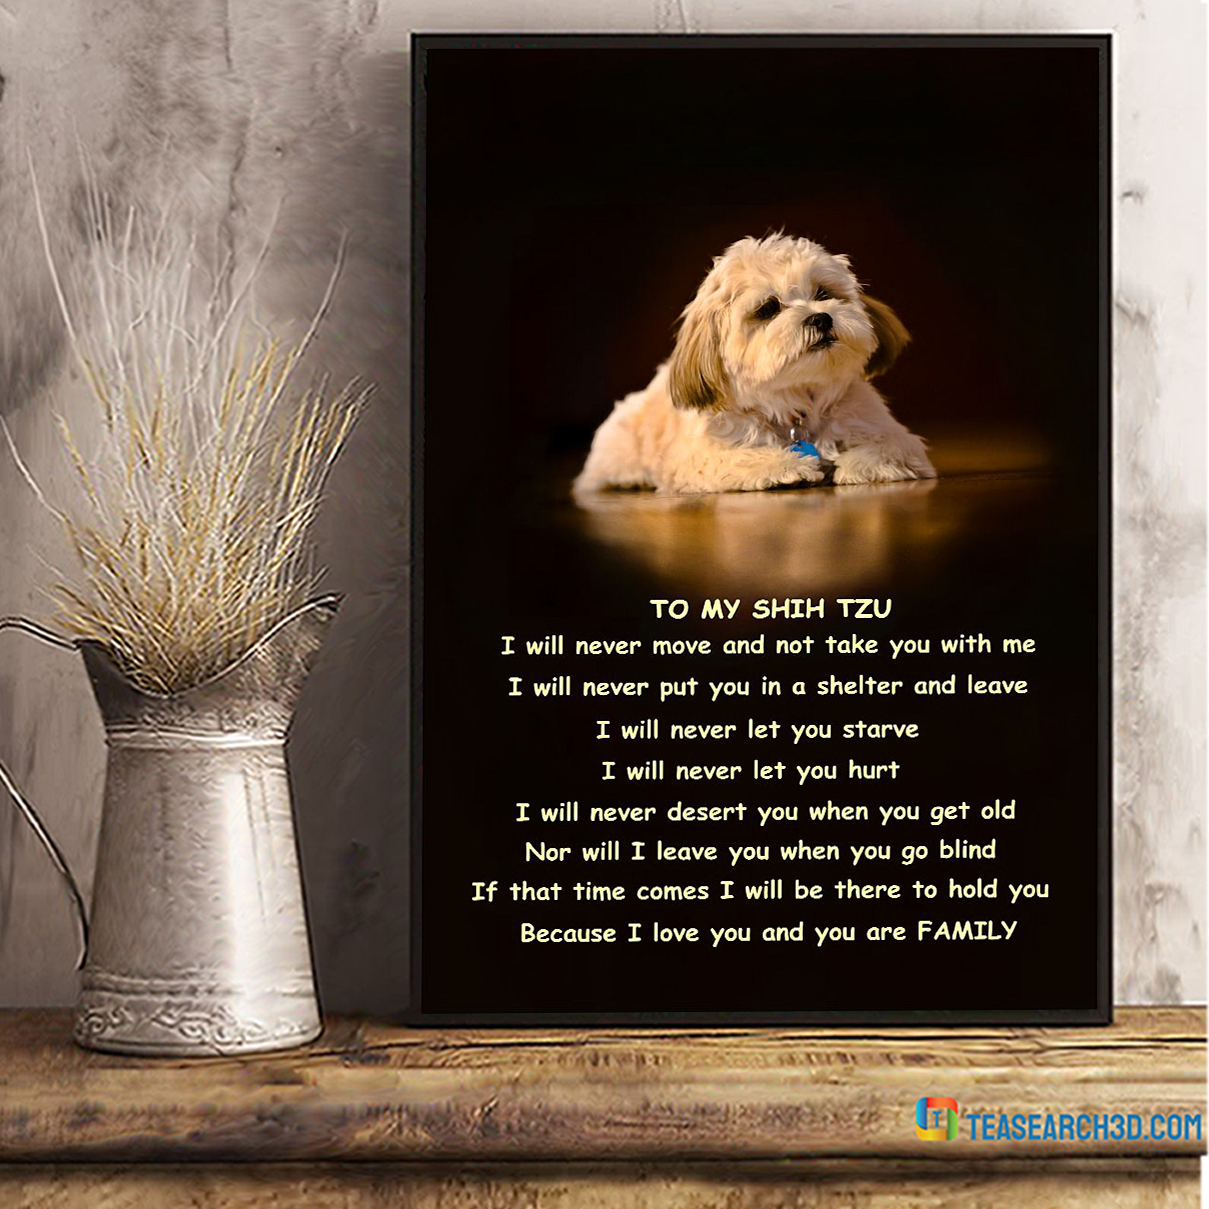 Family to my shih tzu poster A2